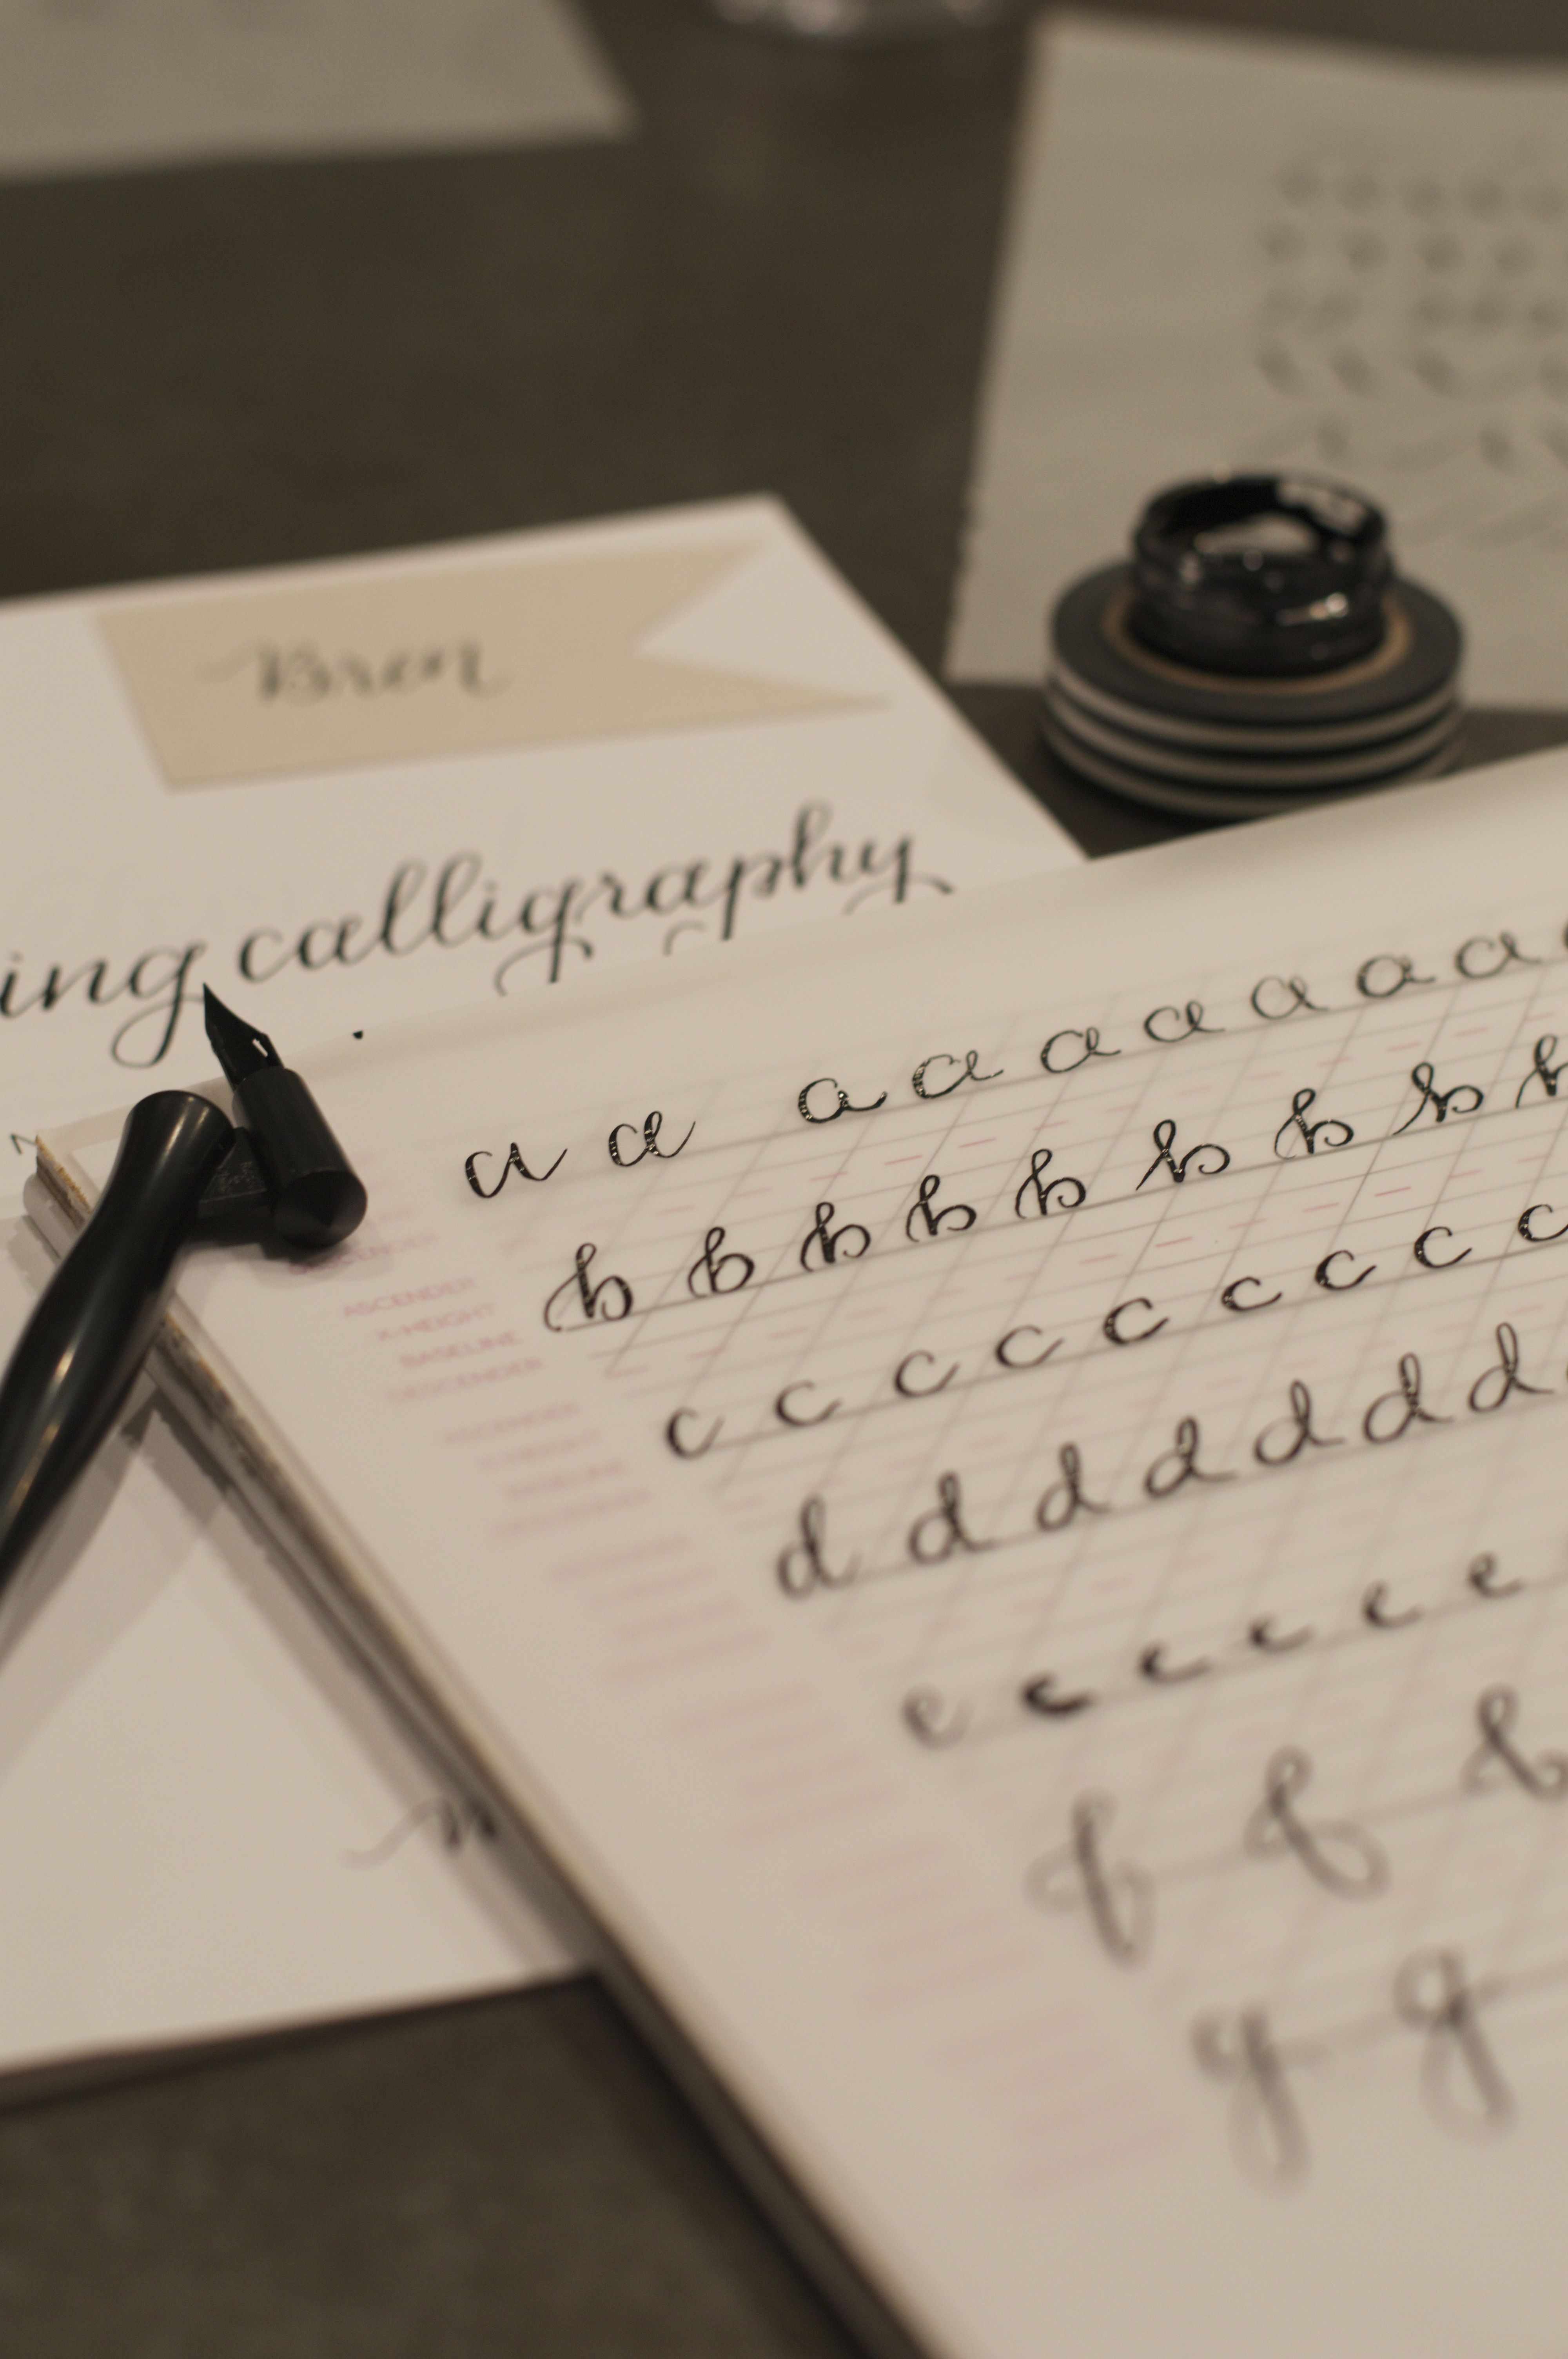 Calligraphy 101 must bring buns Calligraphy 101